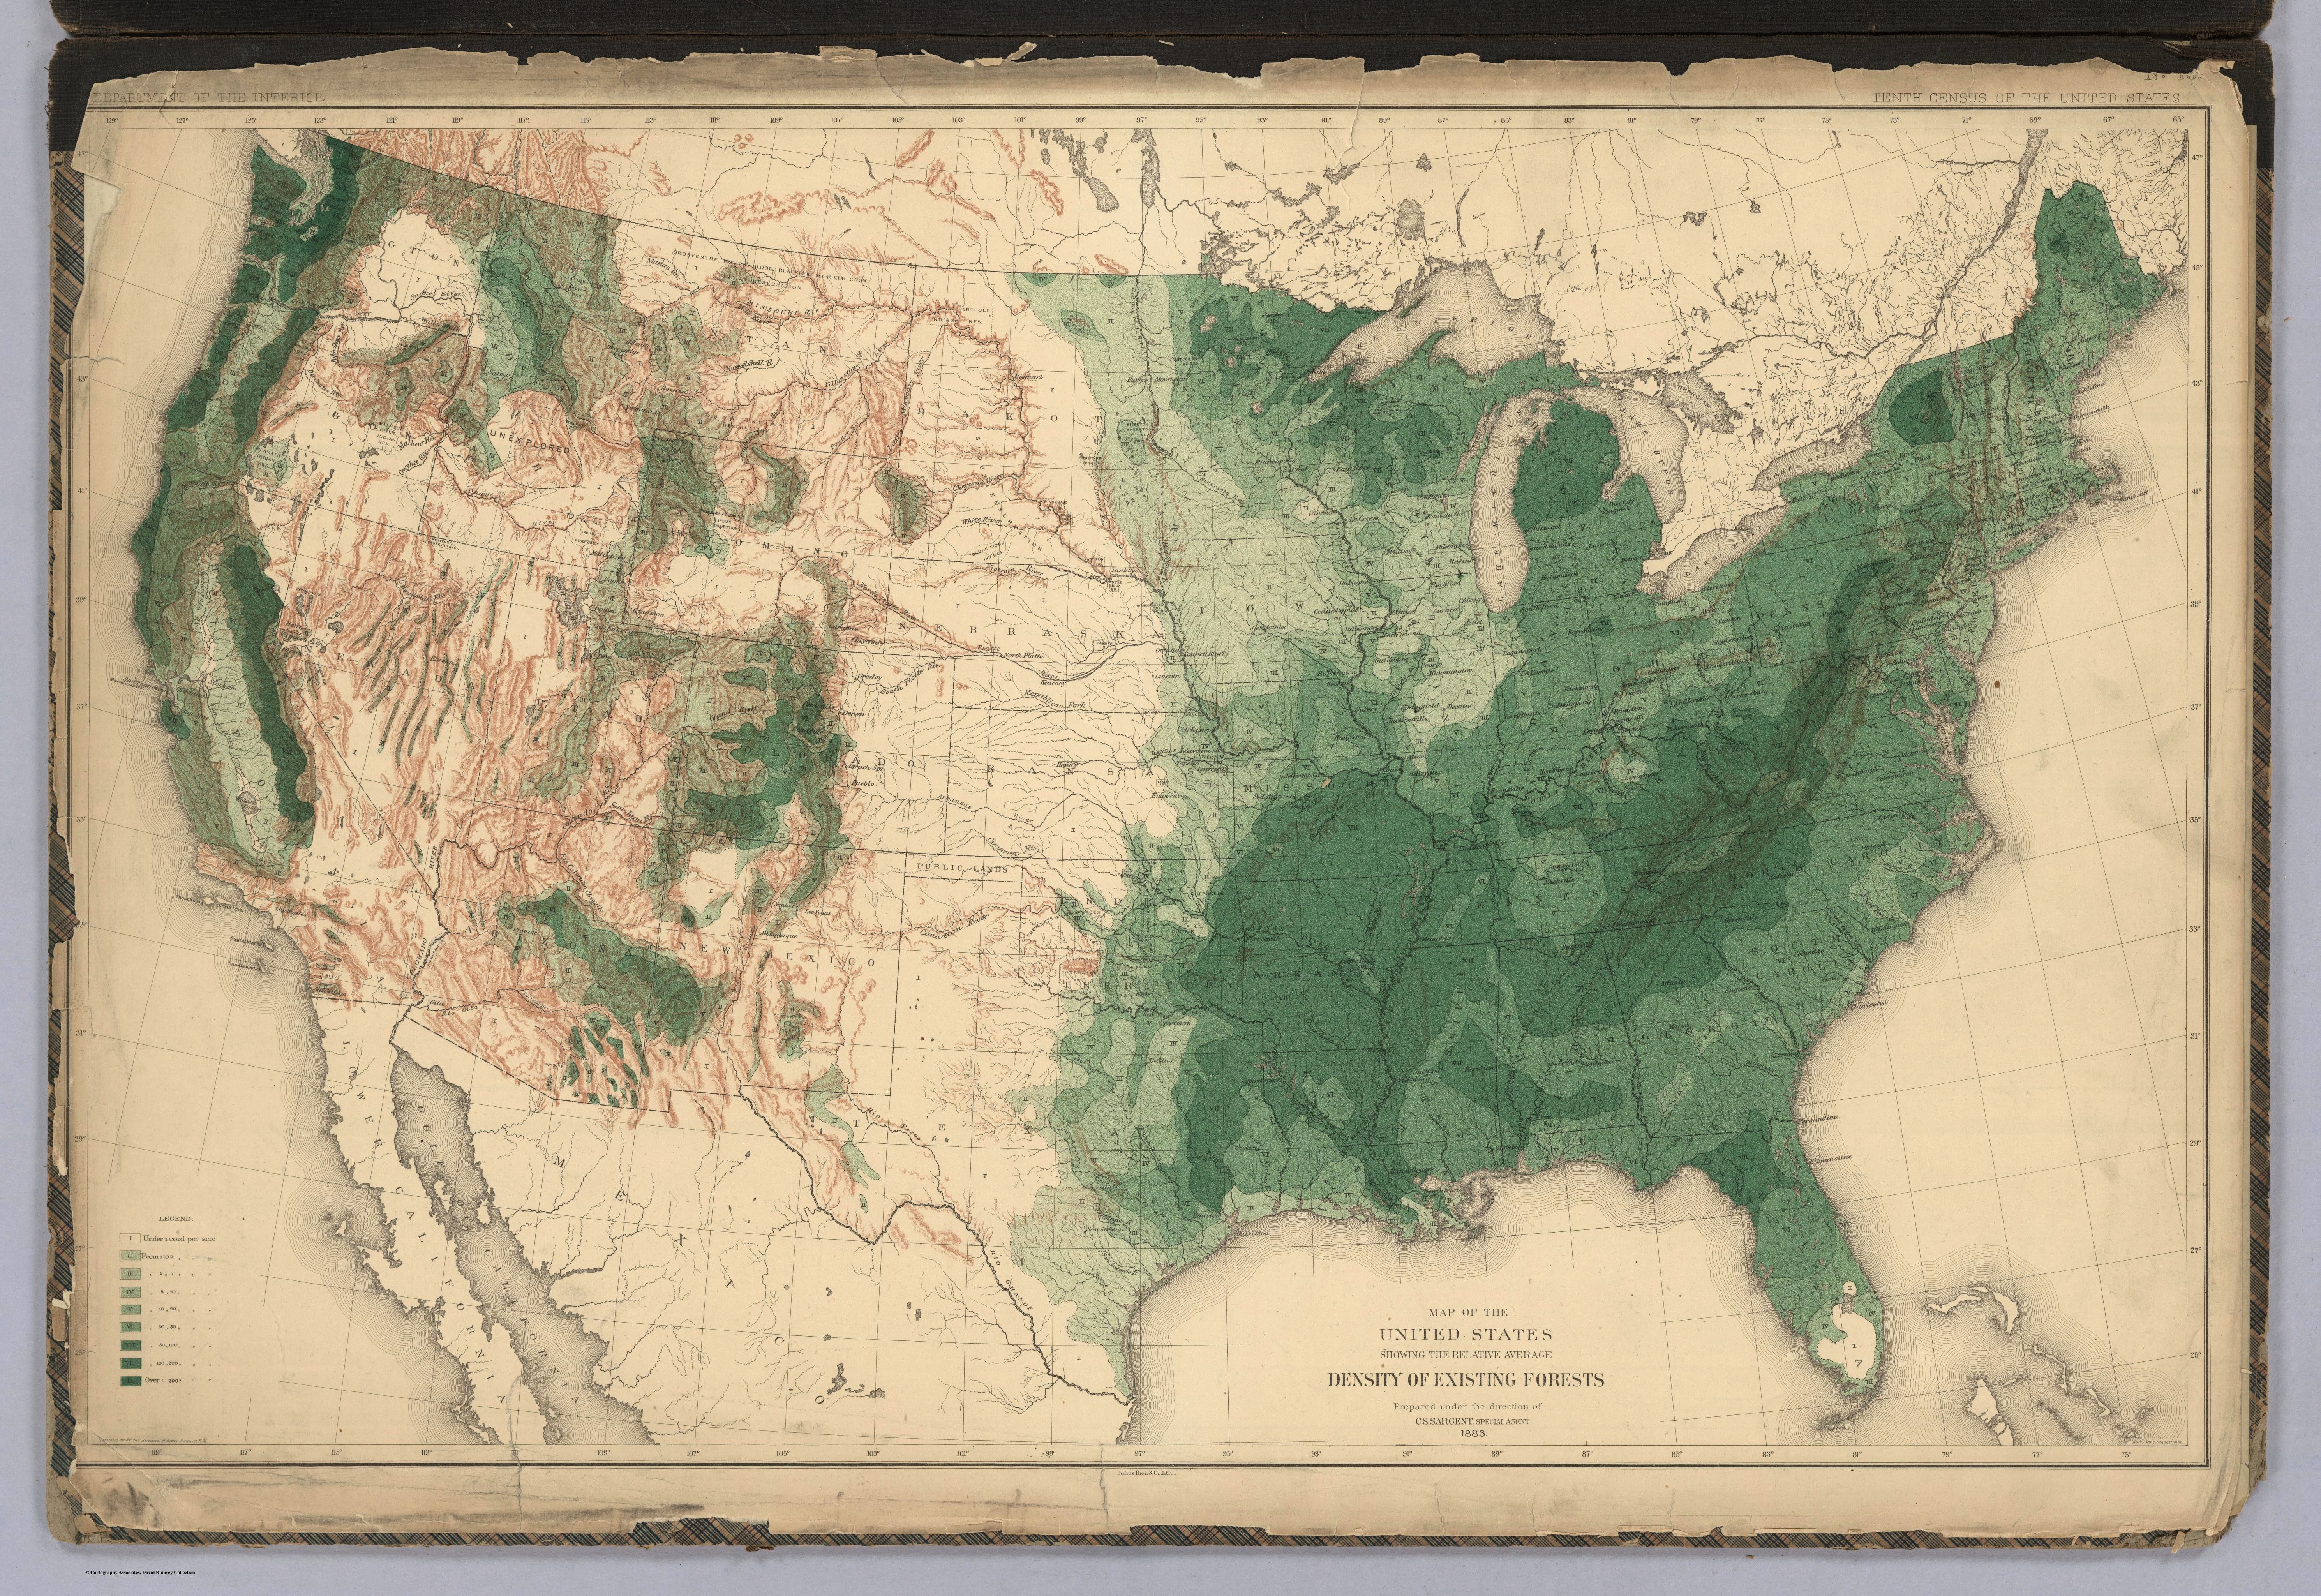 Pretty Tree Maps Showing The State Of American Forests In - Map of us green forests